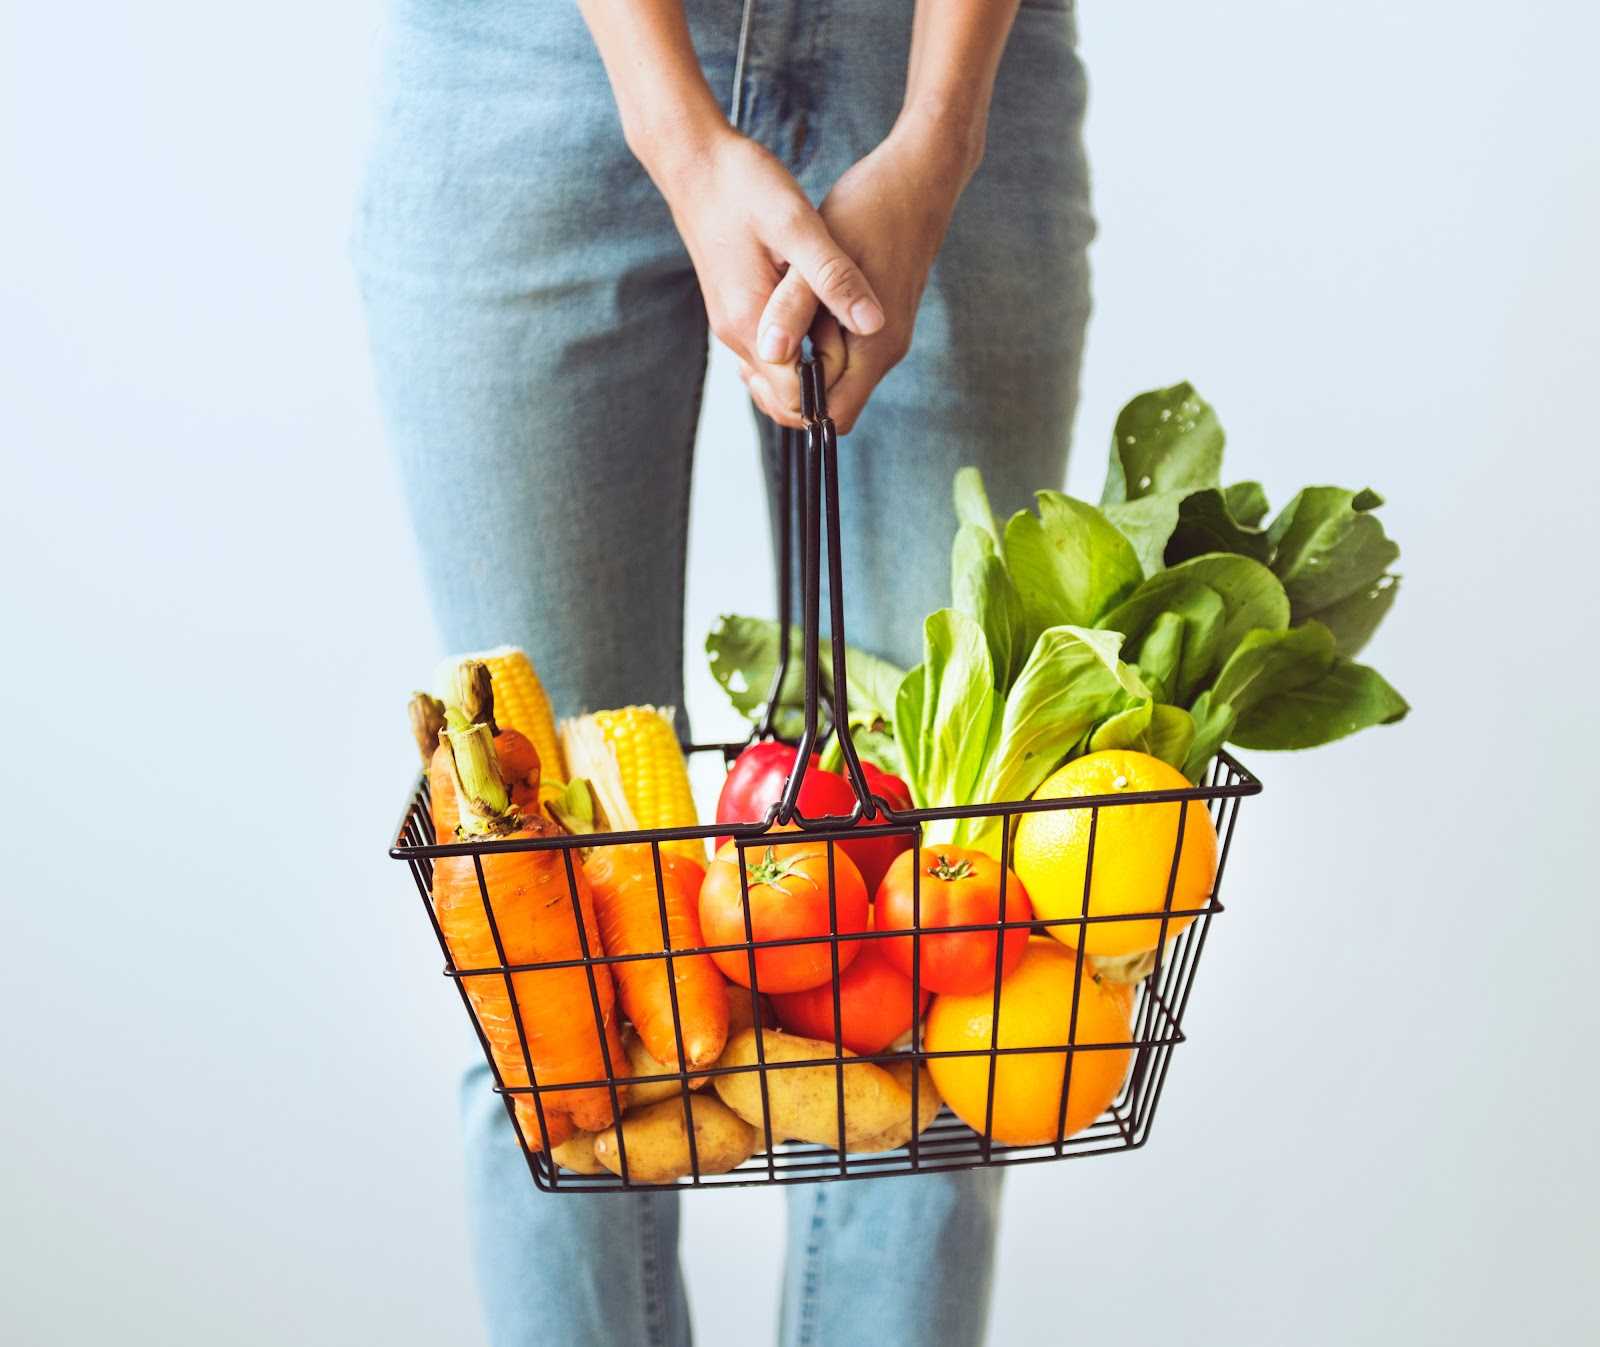 Woman holding basket full of groceries